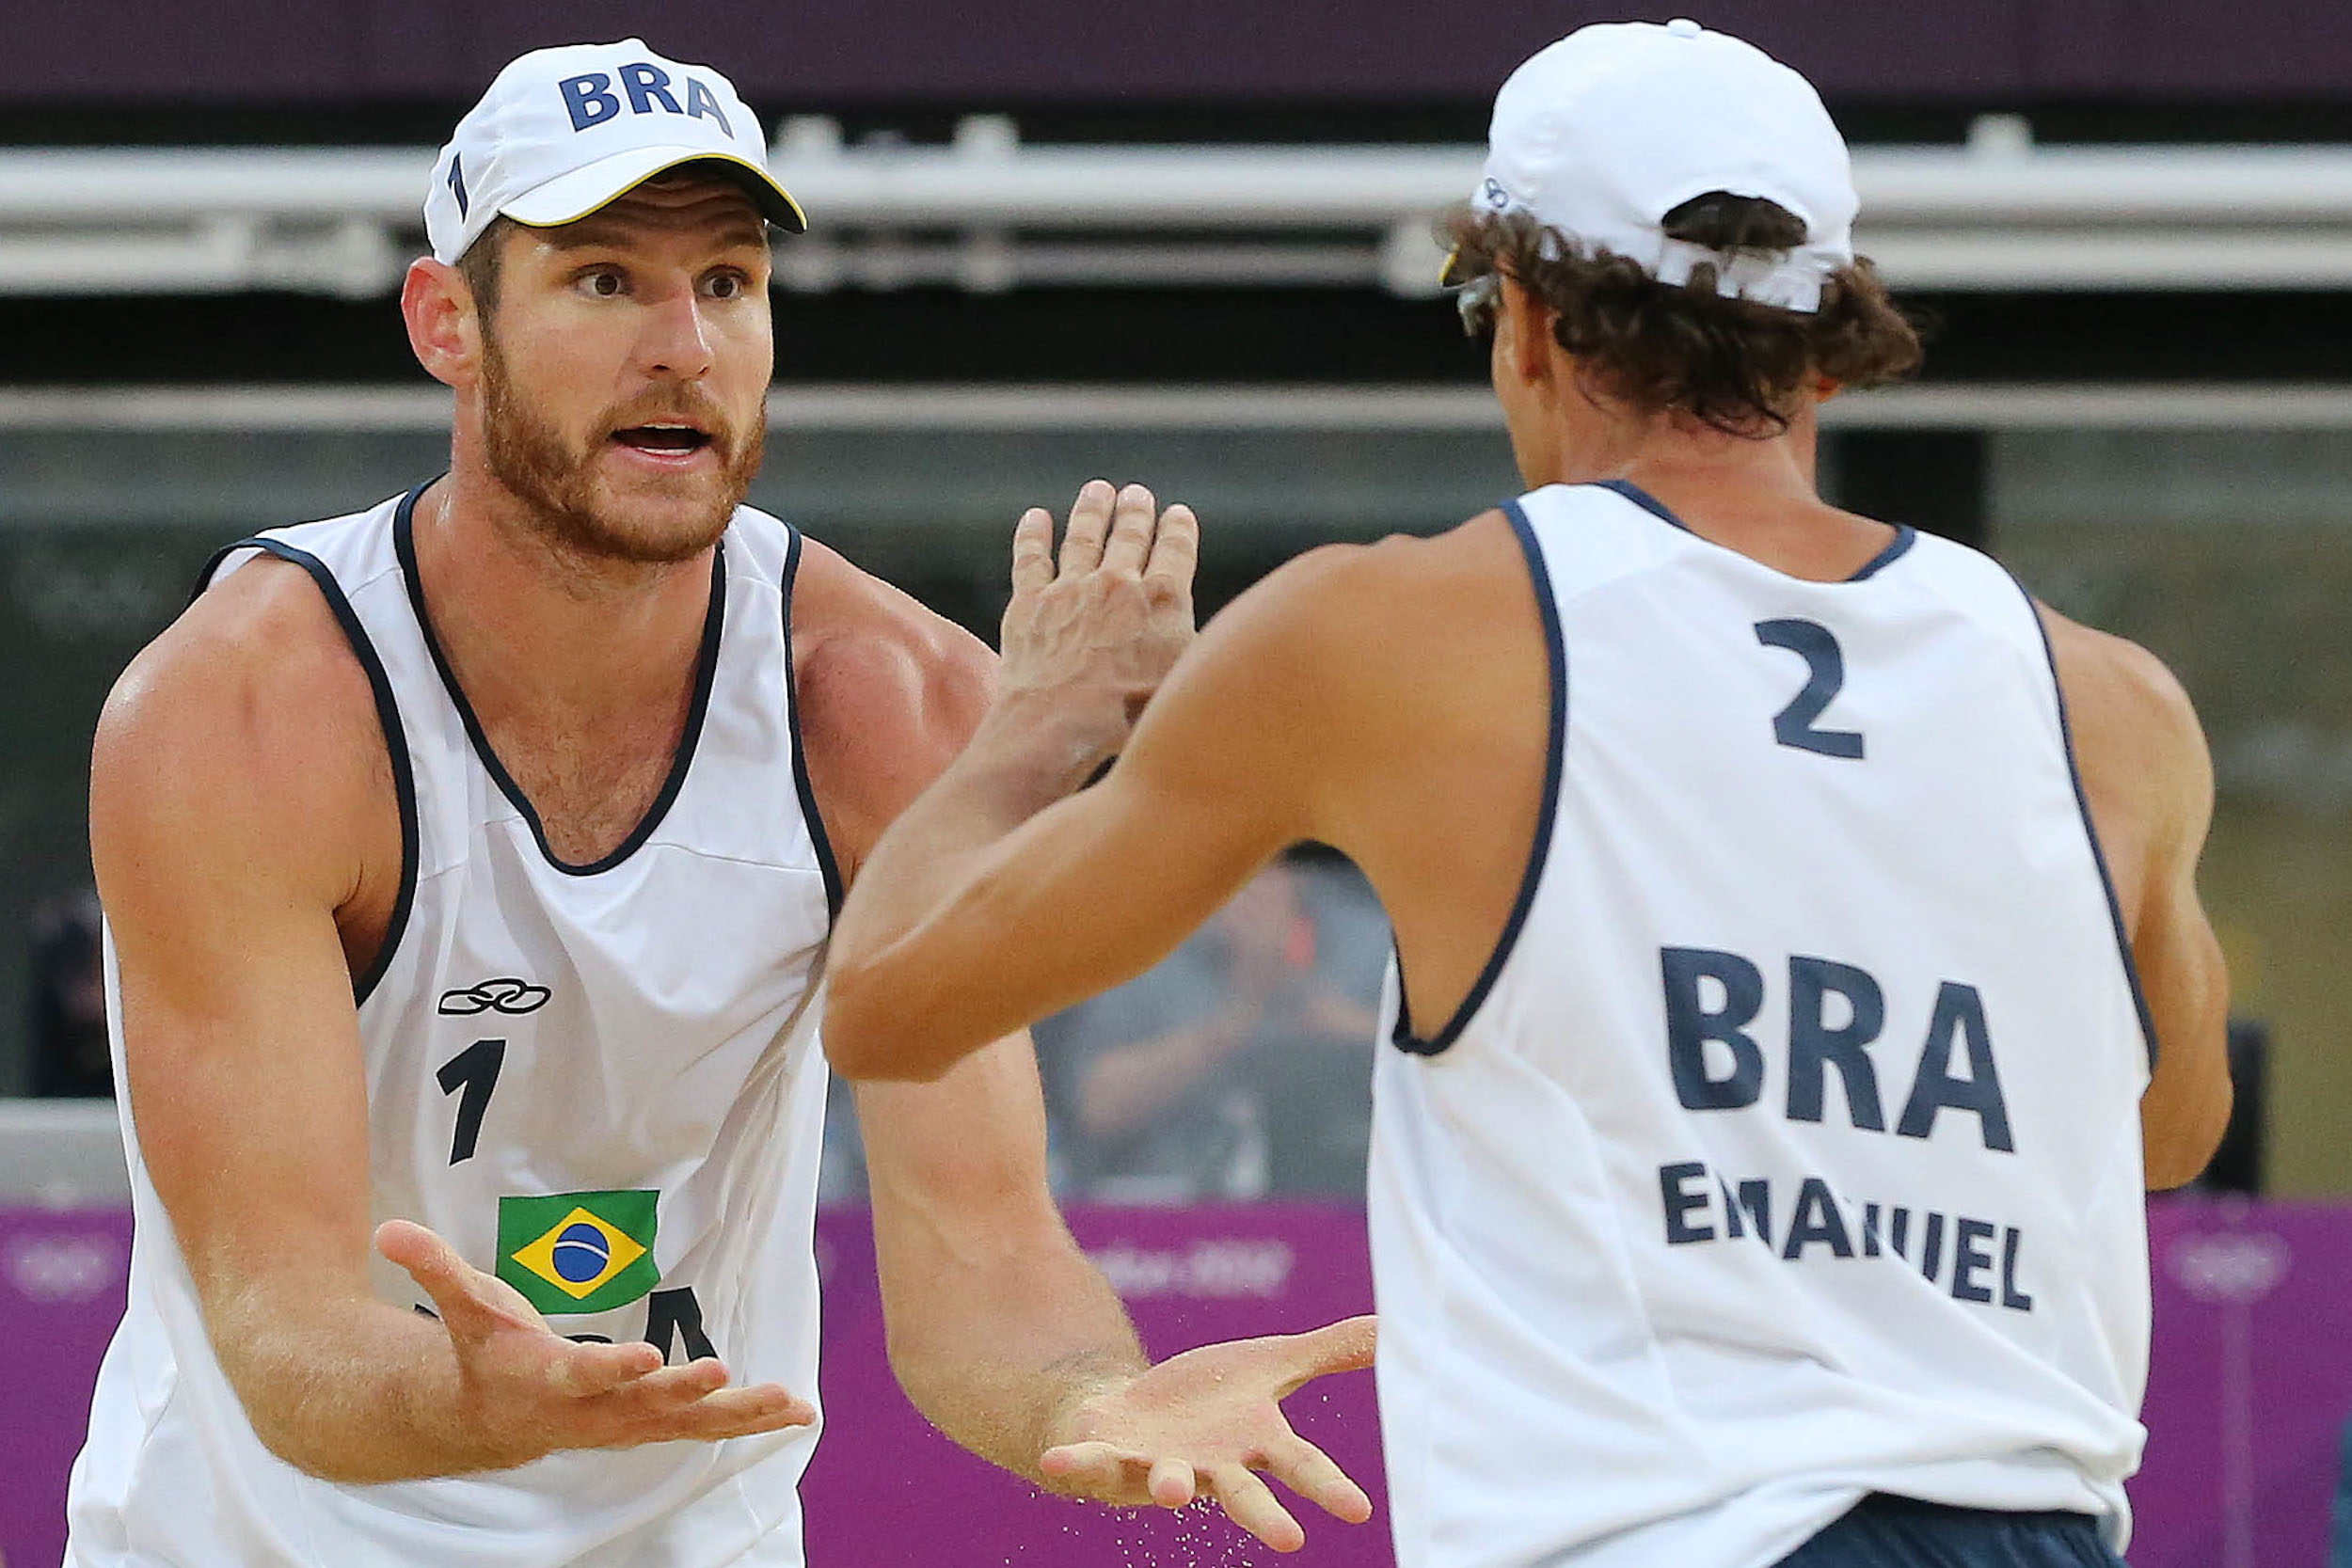 Londres 2012, BeachVolleyball